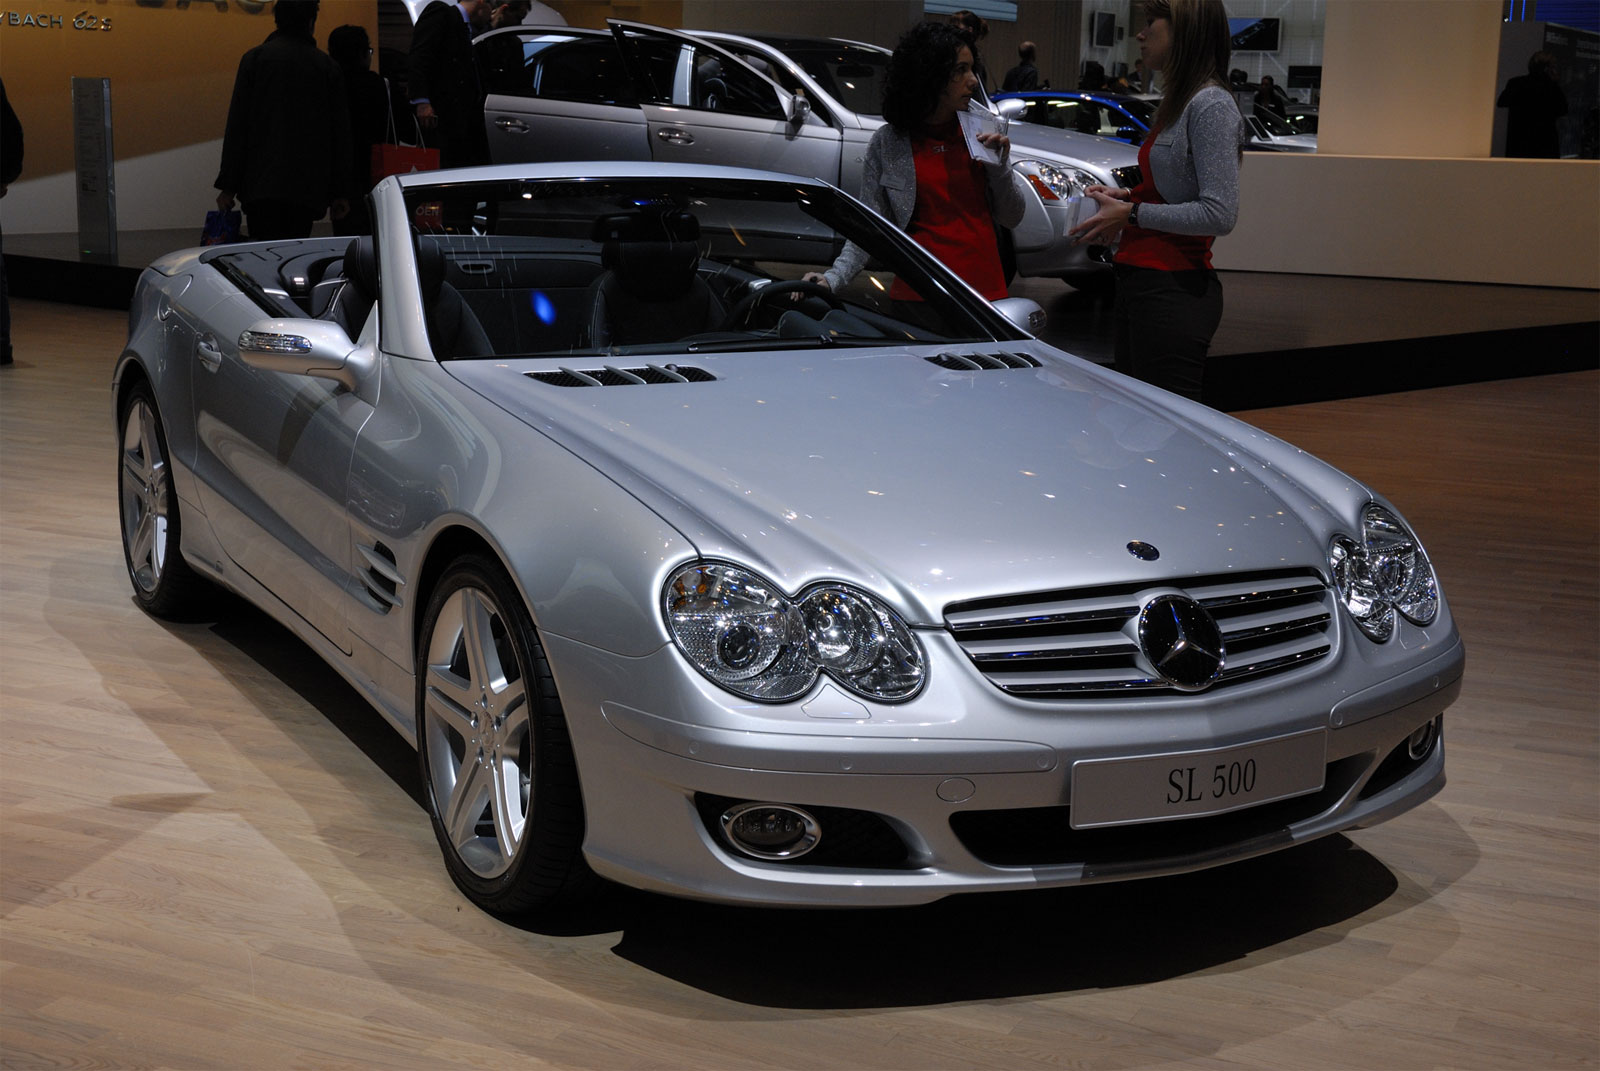 Mercedes-Benz SL 500 photo 11